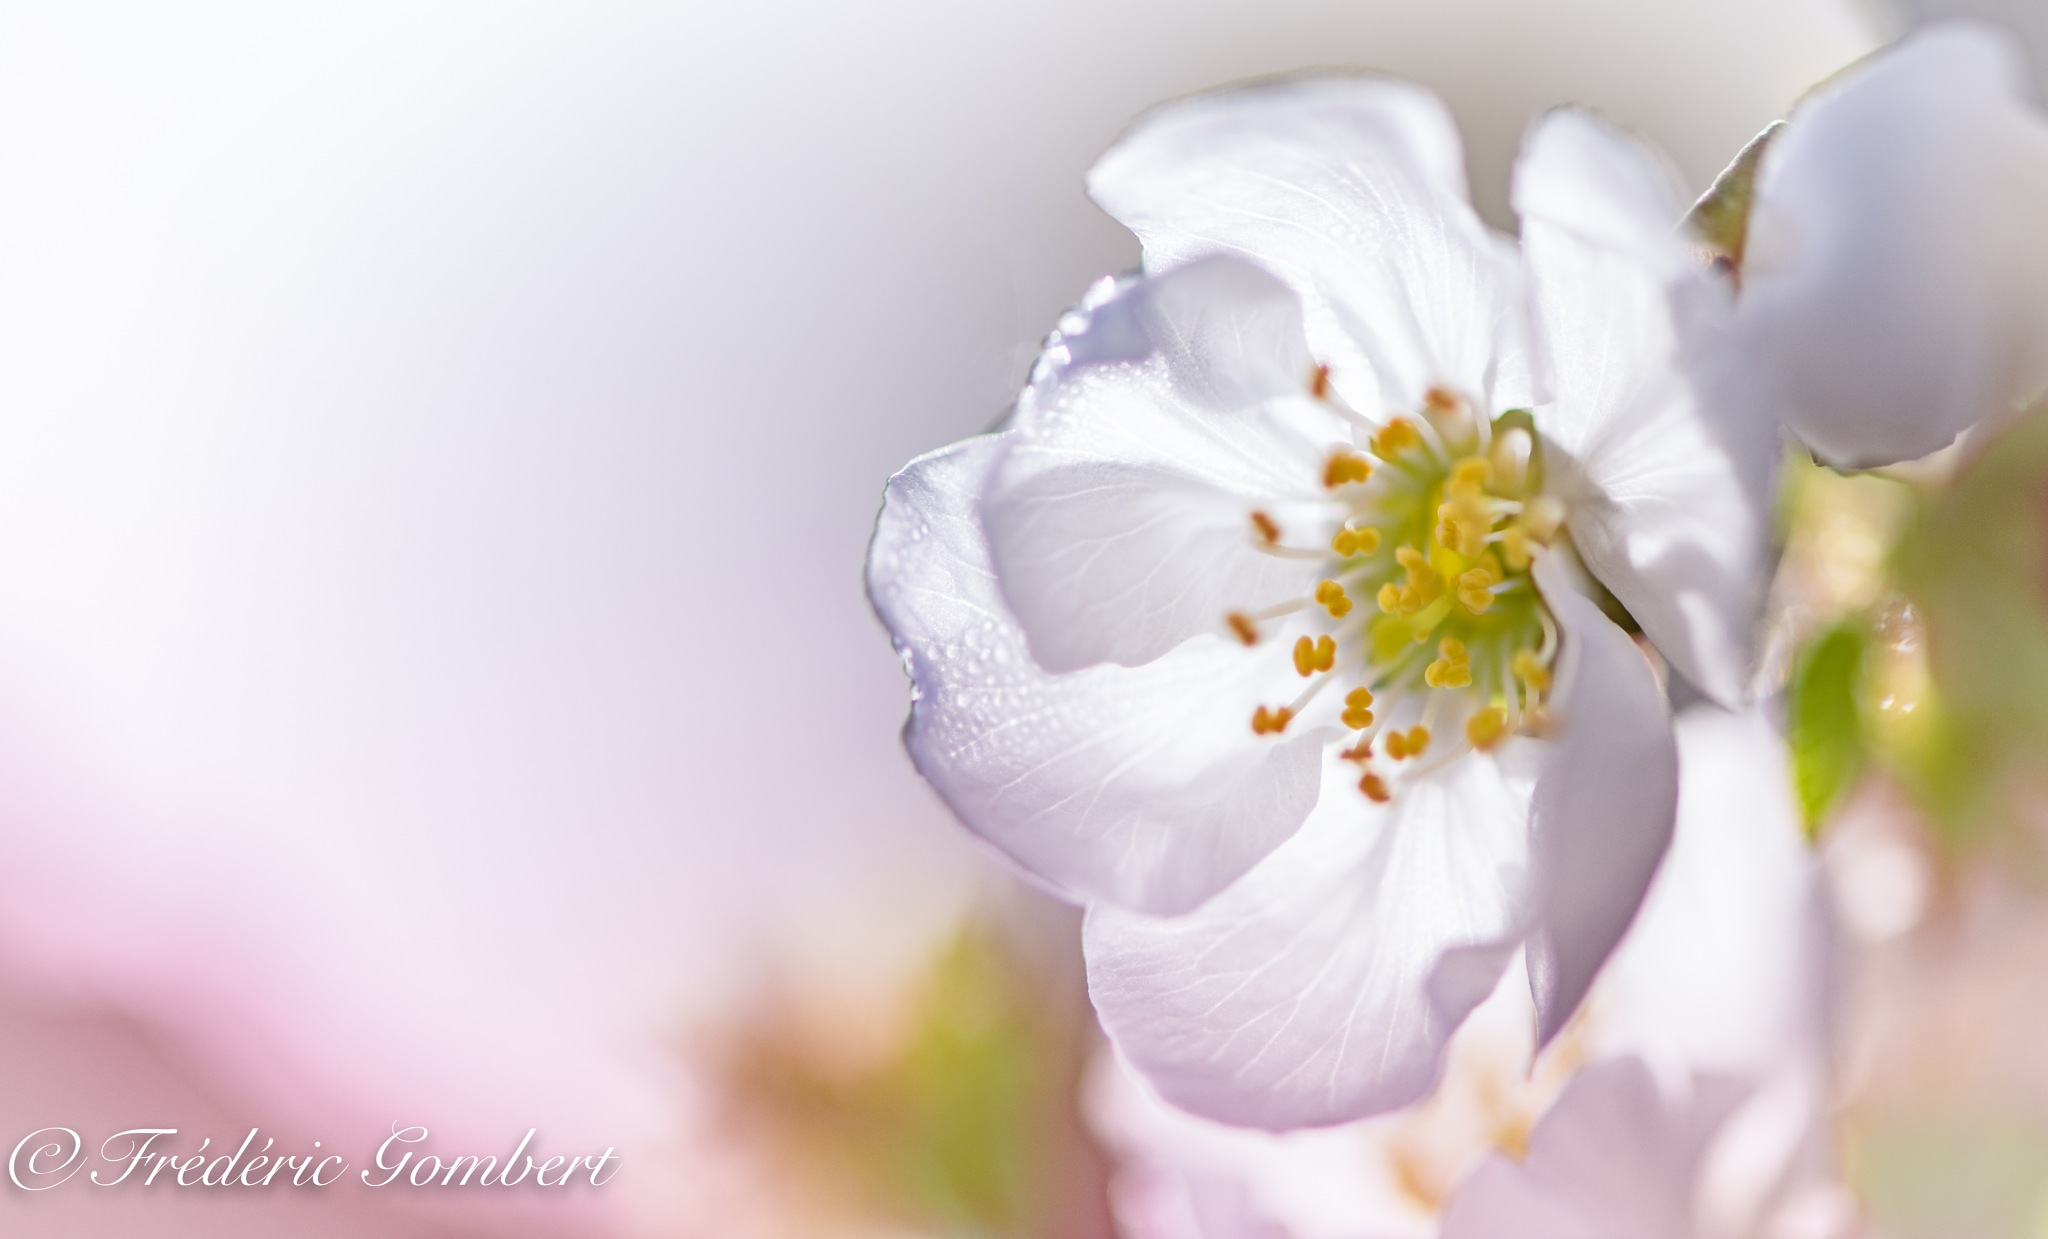 Morning White by Frederic Gombert